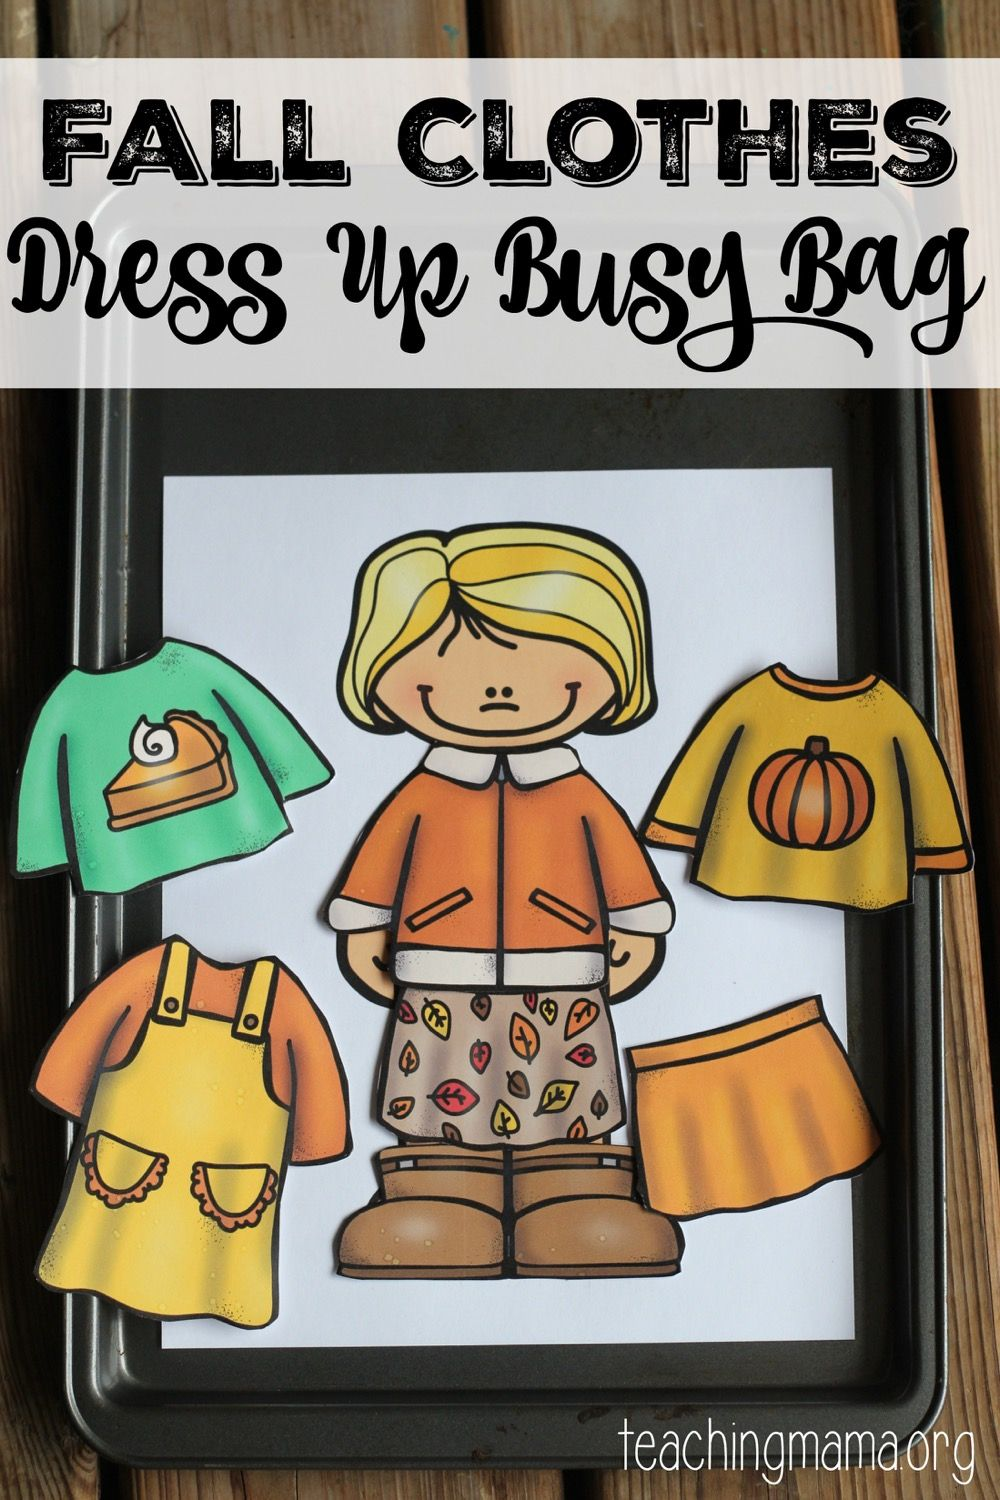 Fall Clothes Dress Up Busy Bag Busy bags, Fall clothes